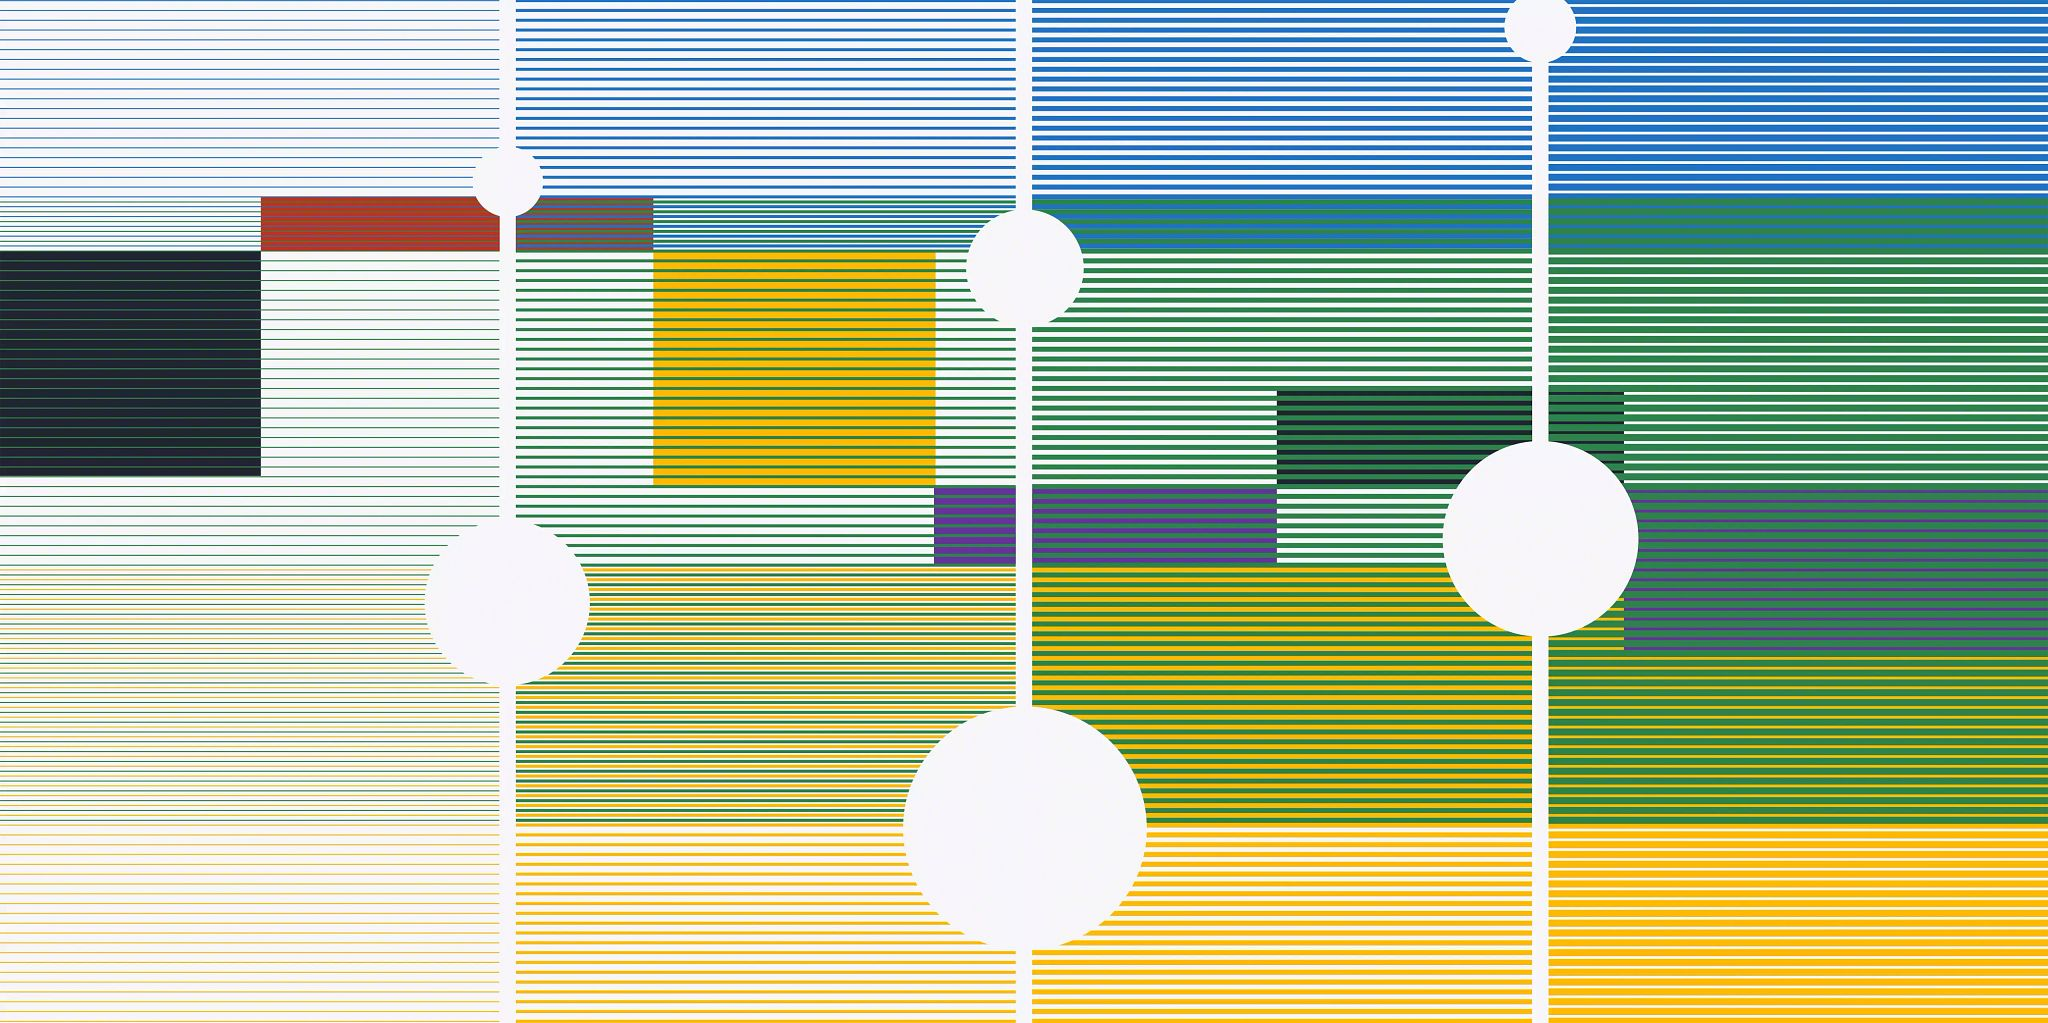 A colorful graphic broken into four vertical sections with thin horizontal lines going across each section creating a sort of